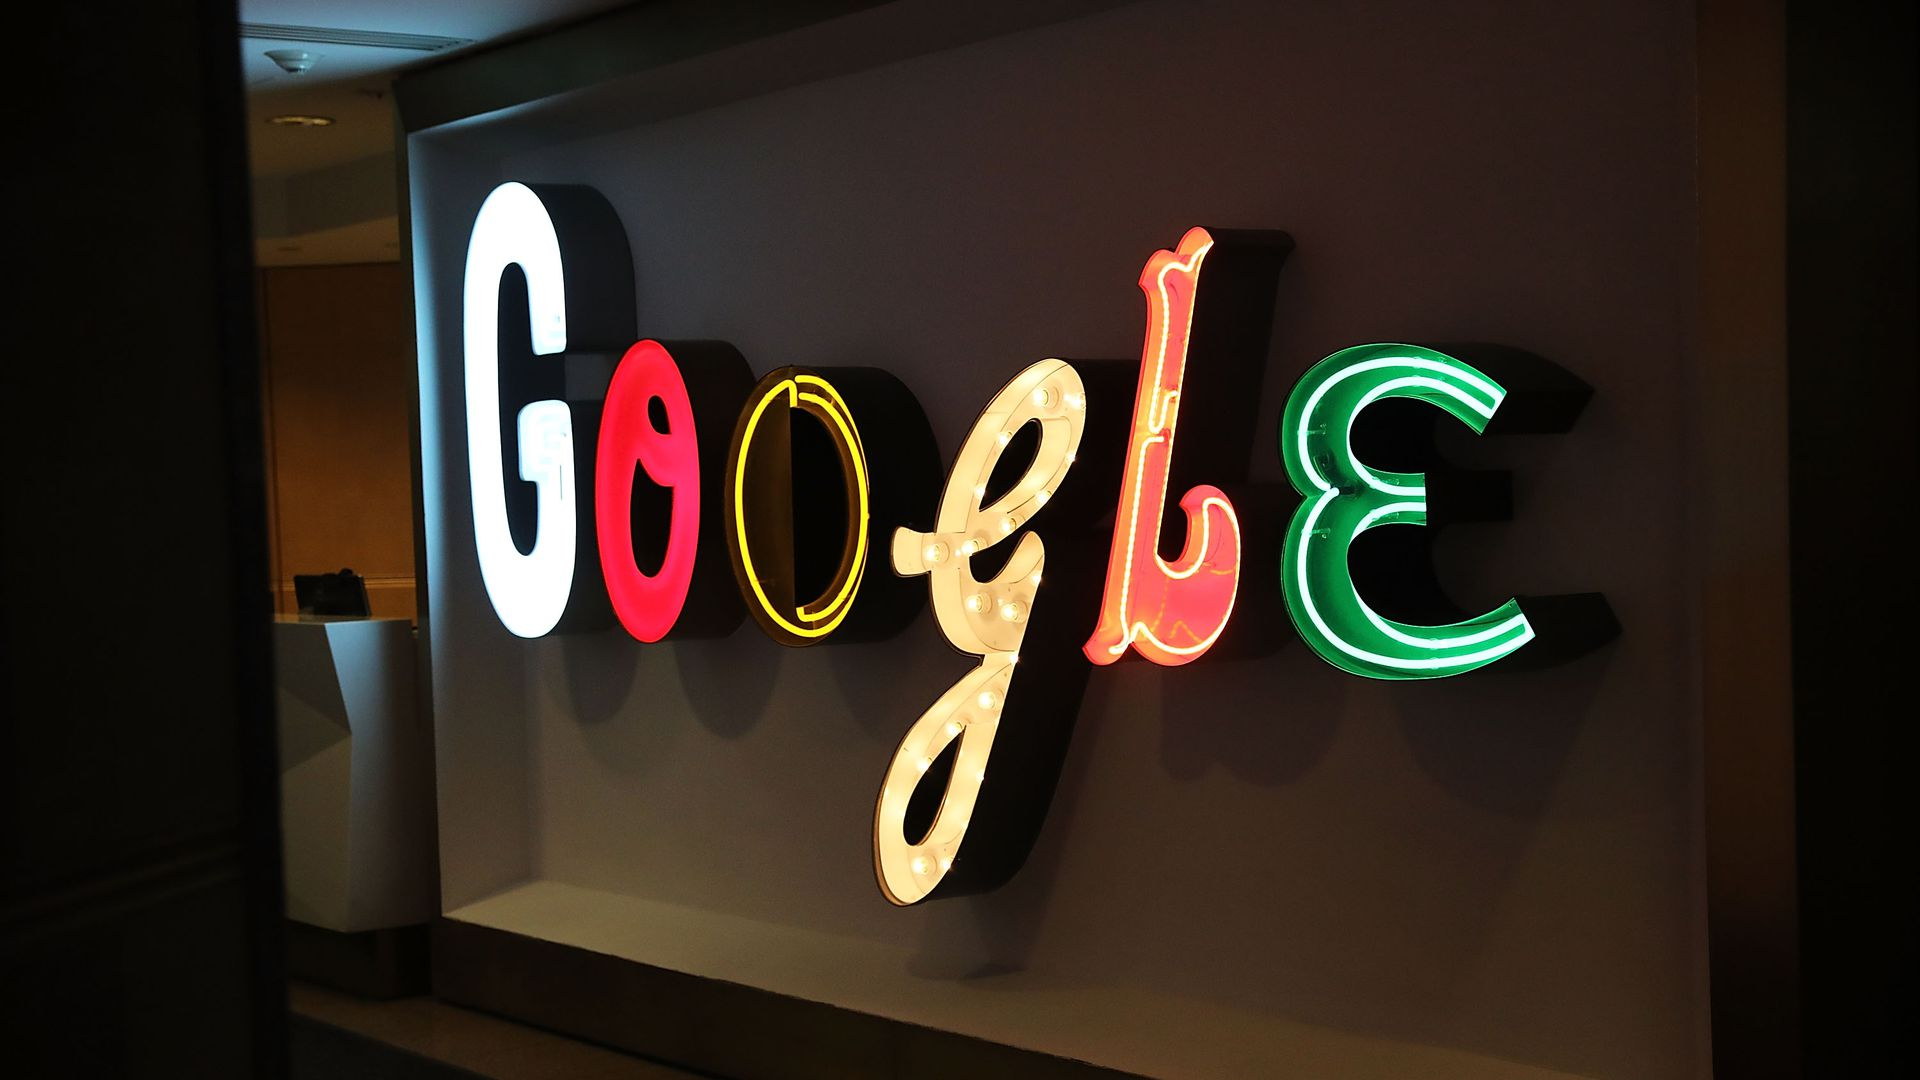 A Google logo sign